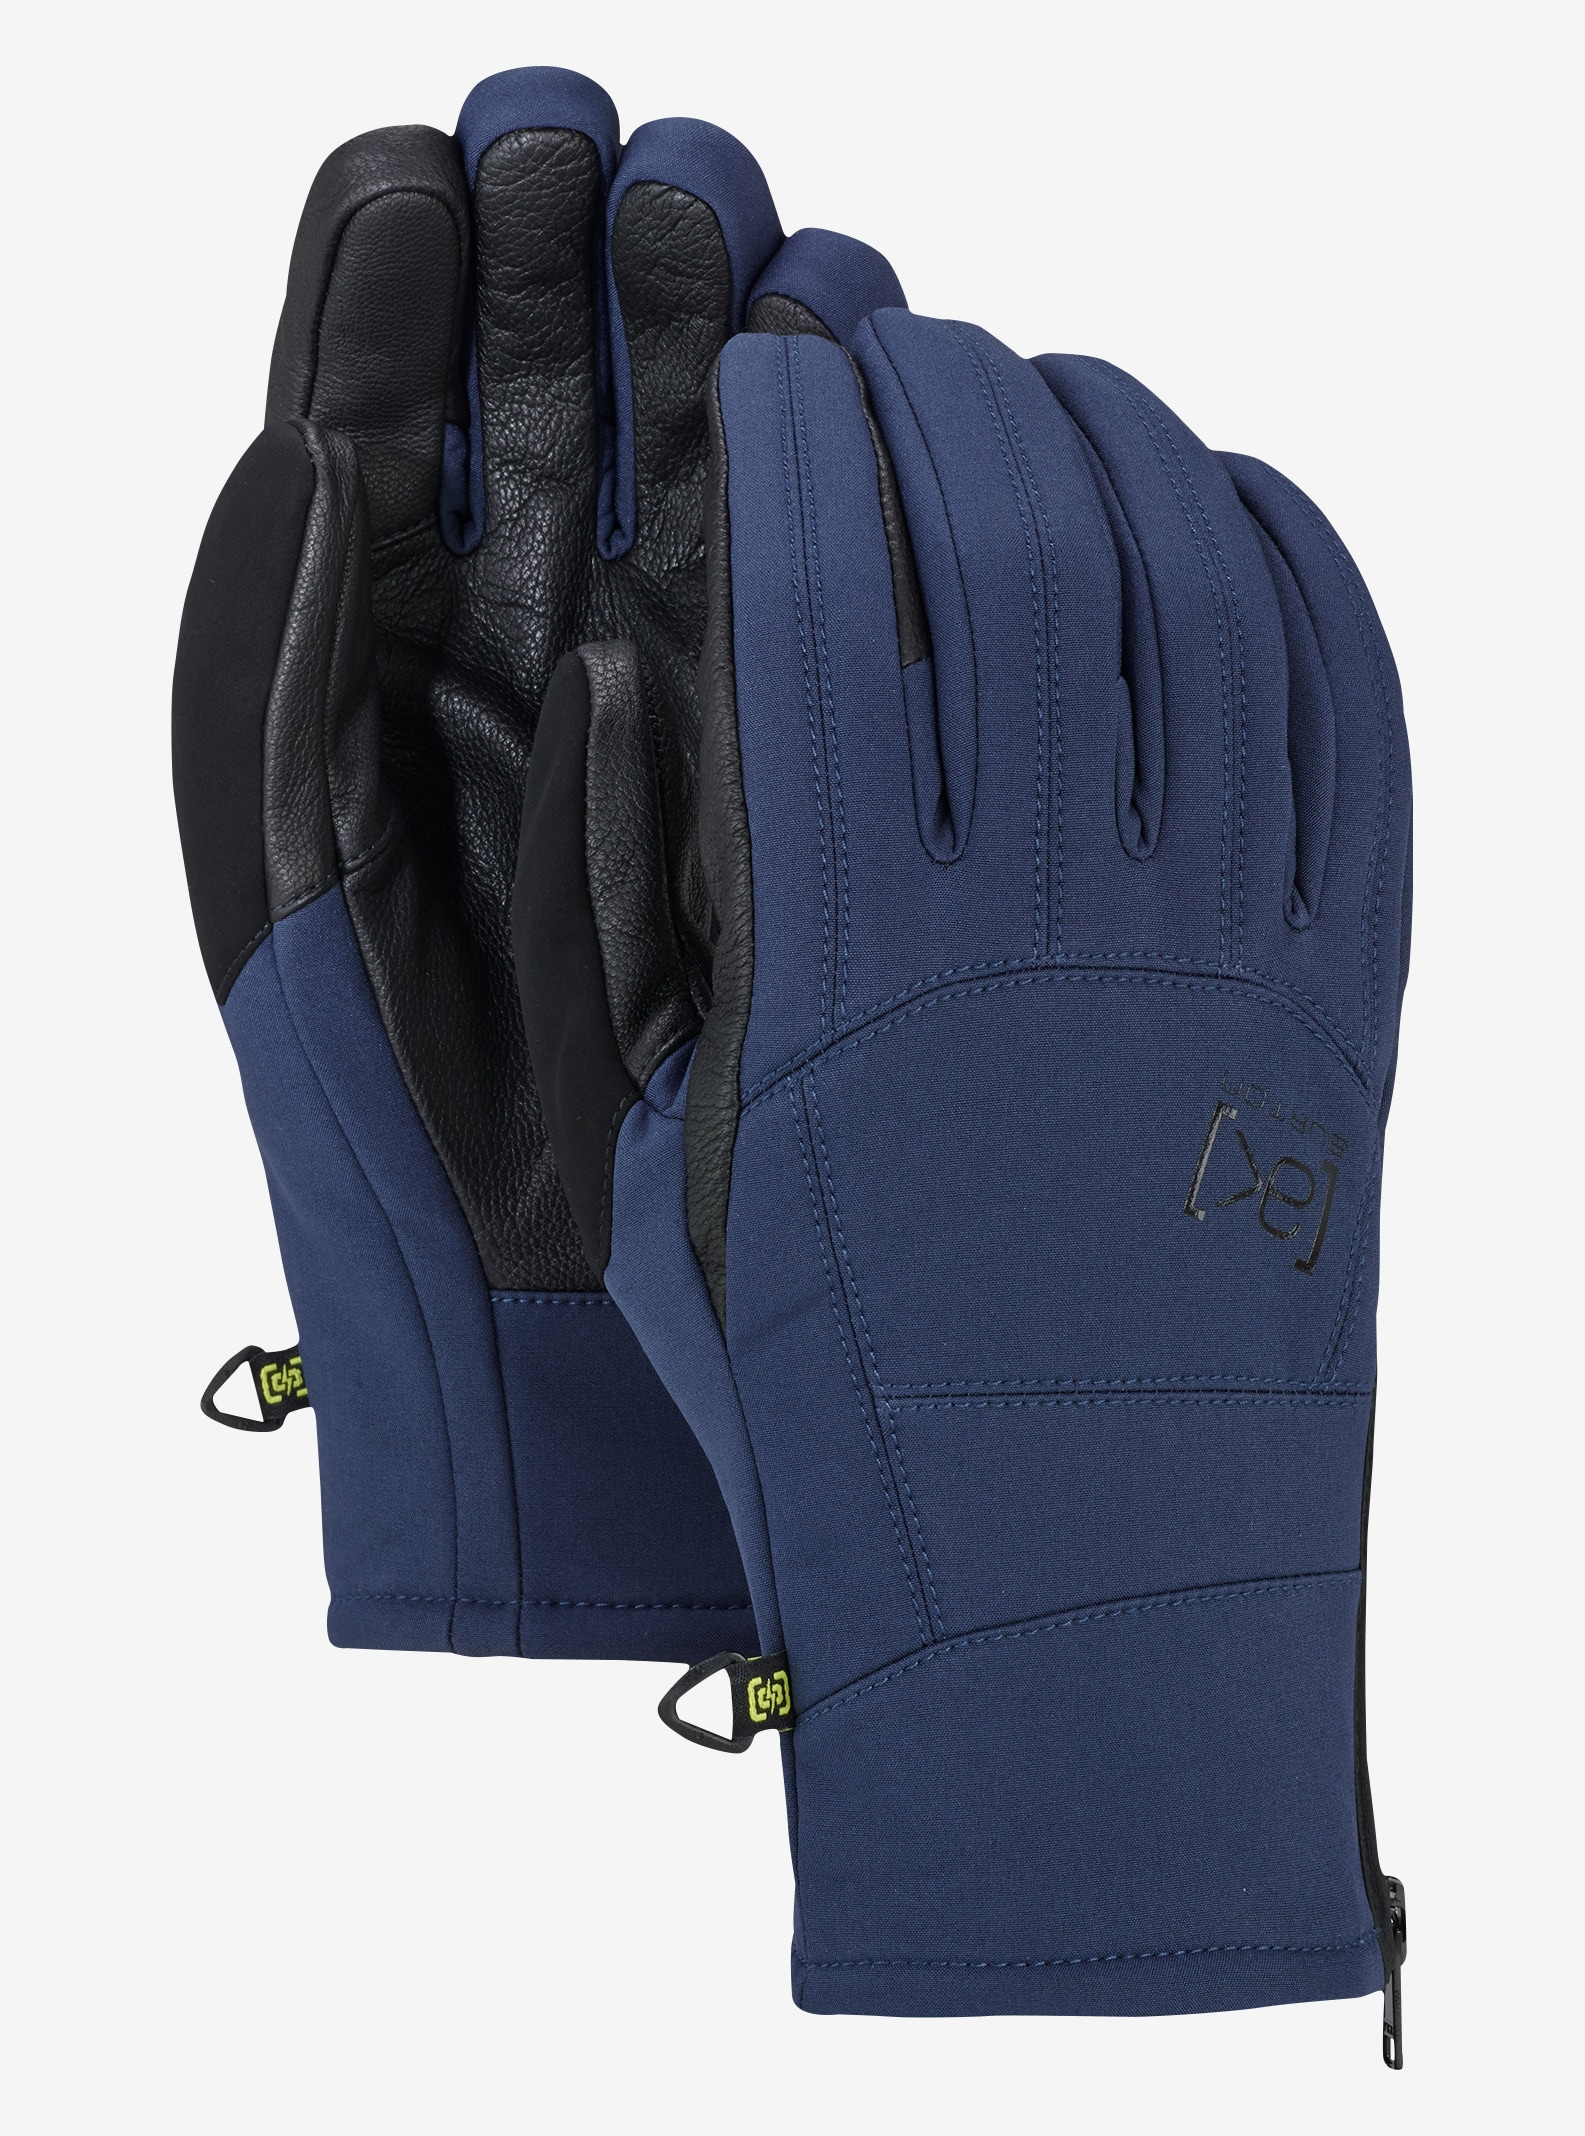 Burton [ak] Tech Glove shown in Mood Indigo